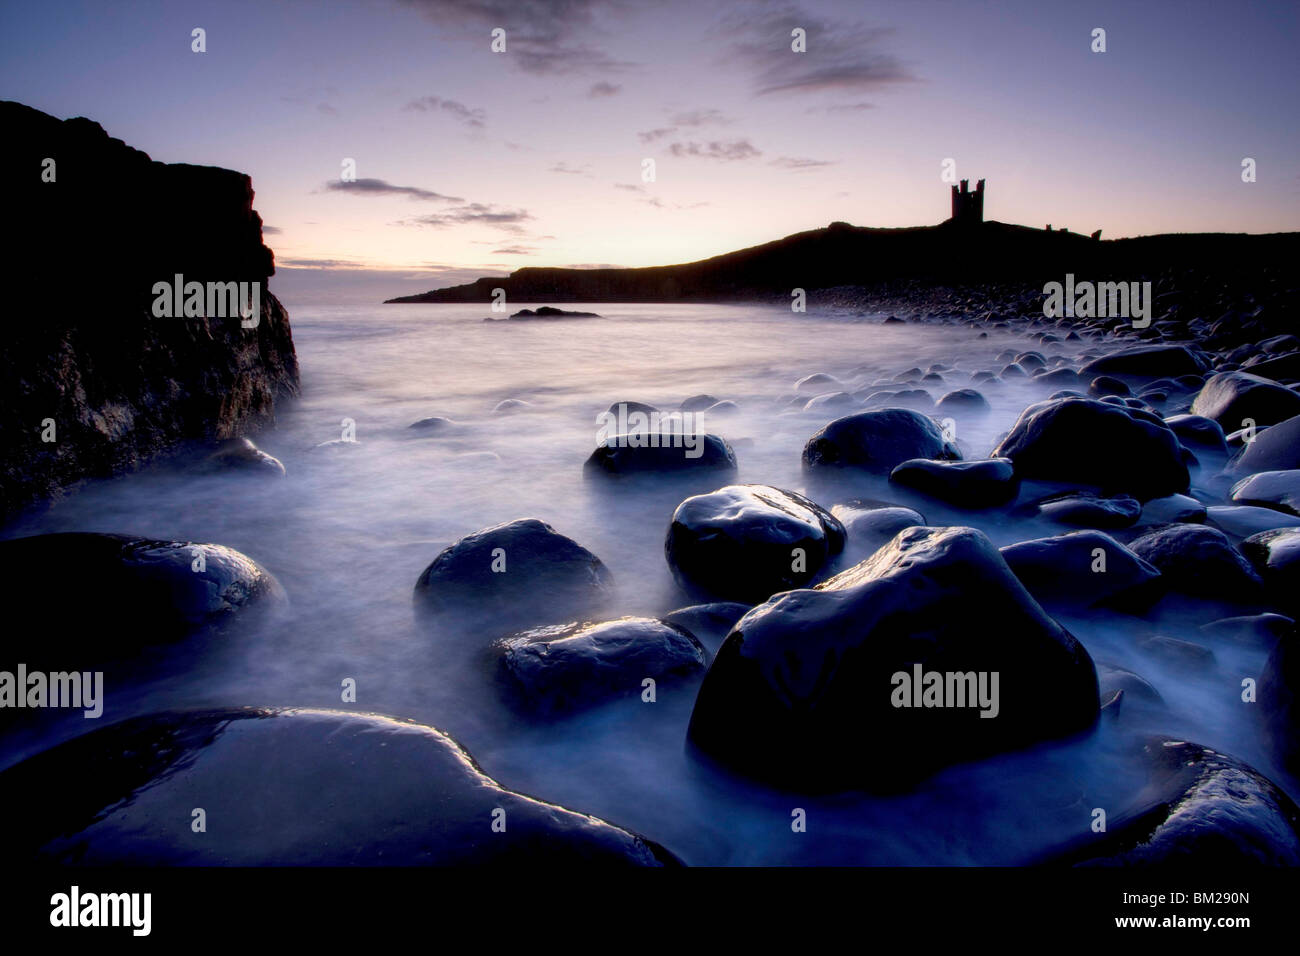 View across the Rumble Churn at dawn towards the ruins of Dunstanburgh Castle, Embleton Bay, Northumberland, UK Stock Photo